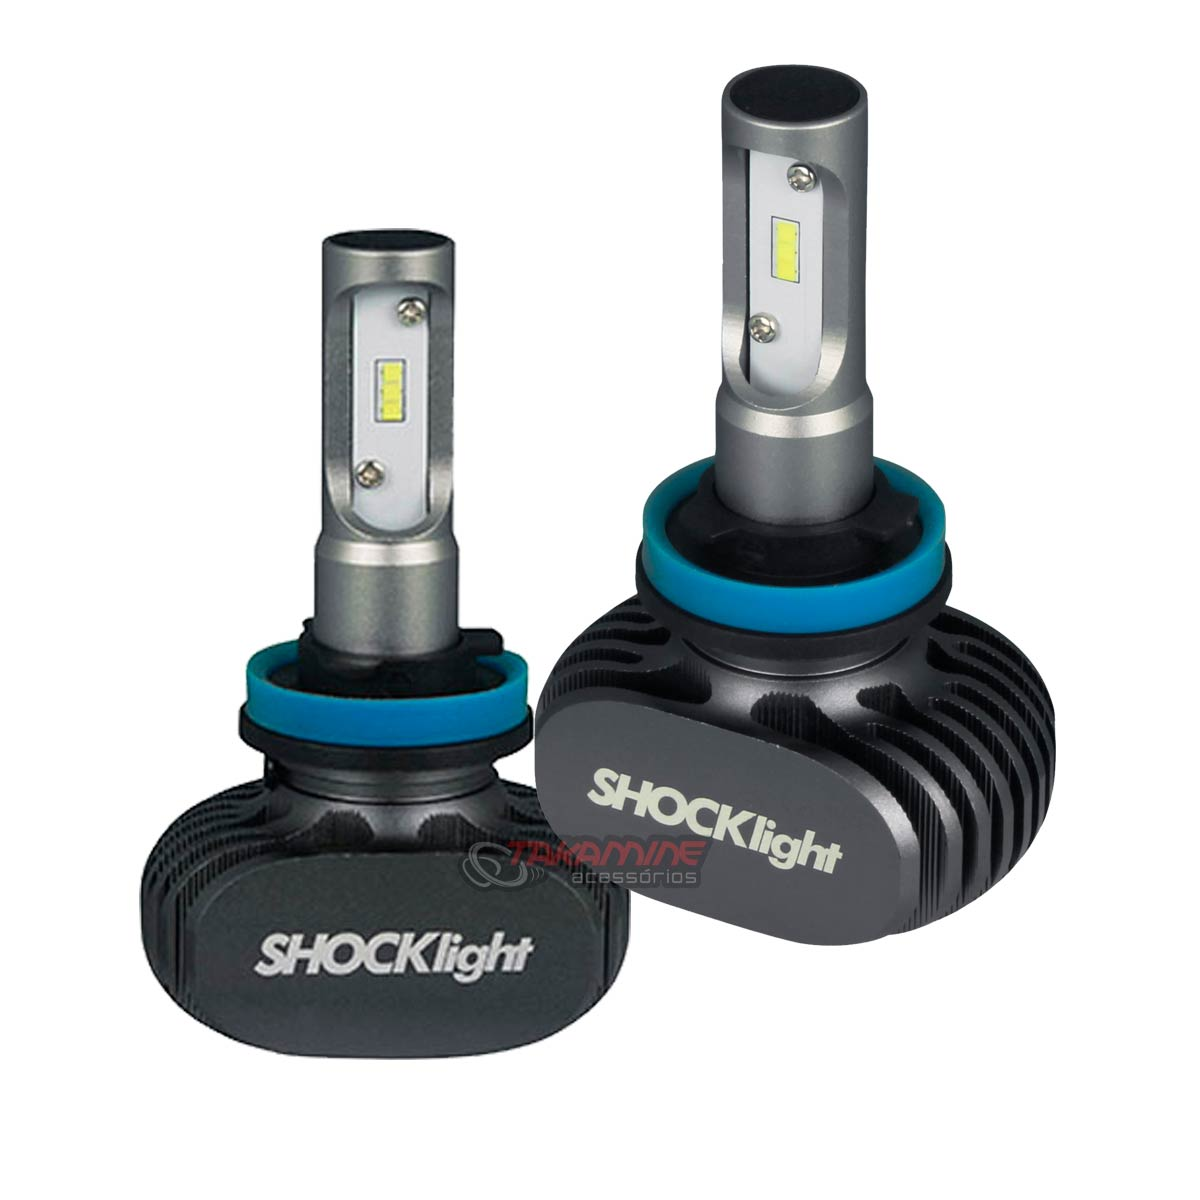 Kit Ultra LED tipo xenon Shocklight modelo H11 50W